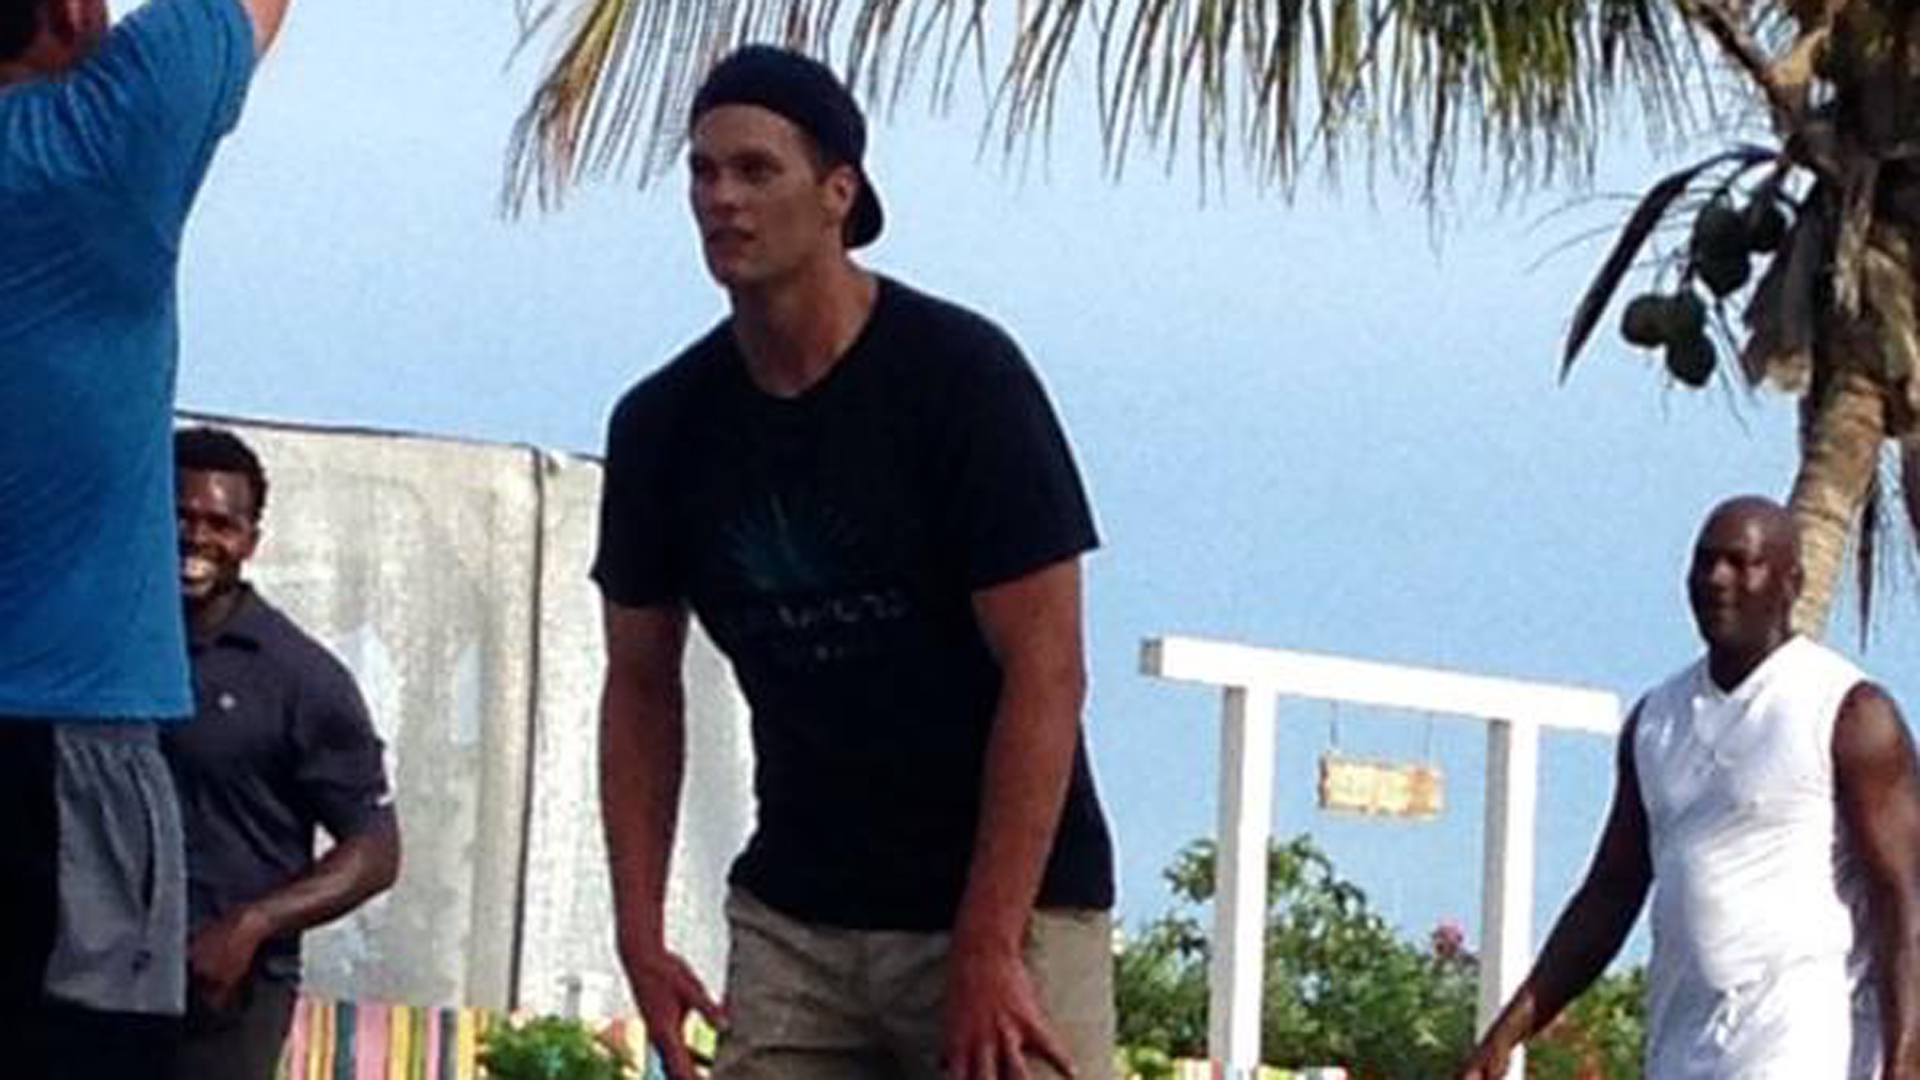 Michael Jordan and Tom Brady are just hanging out playing pickup in the Bahamas